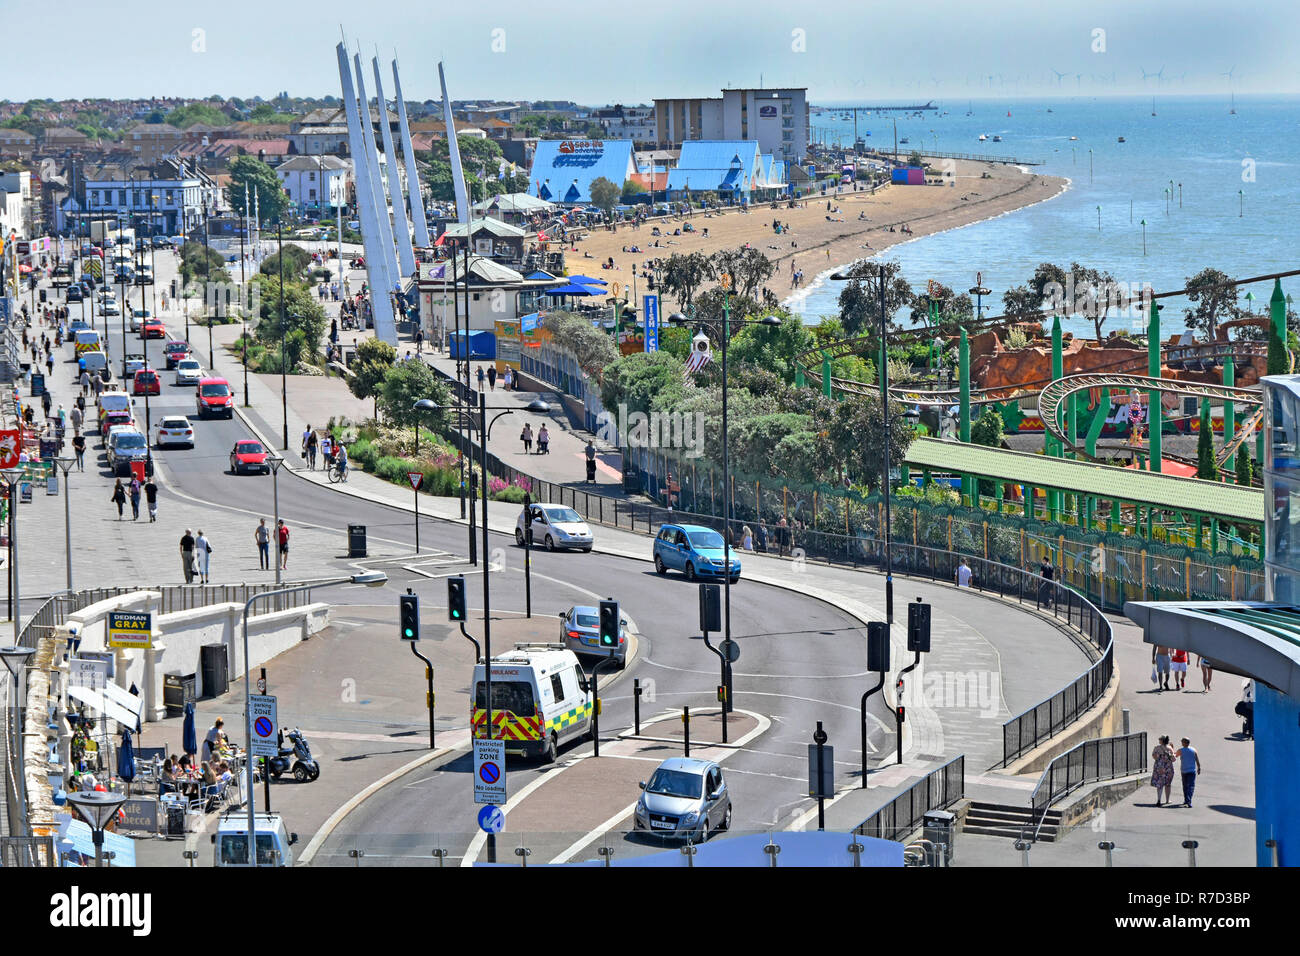 Looking down view from above Southend on sea holiday seaside resort waterfront beach & fairground promenade Thames Estuary Essex coast England UK - Stock Image